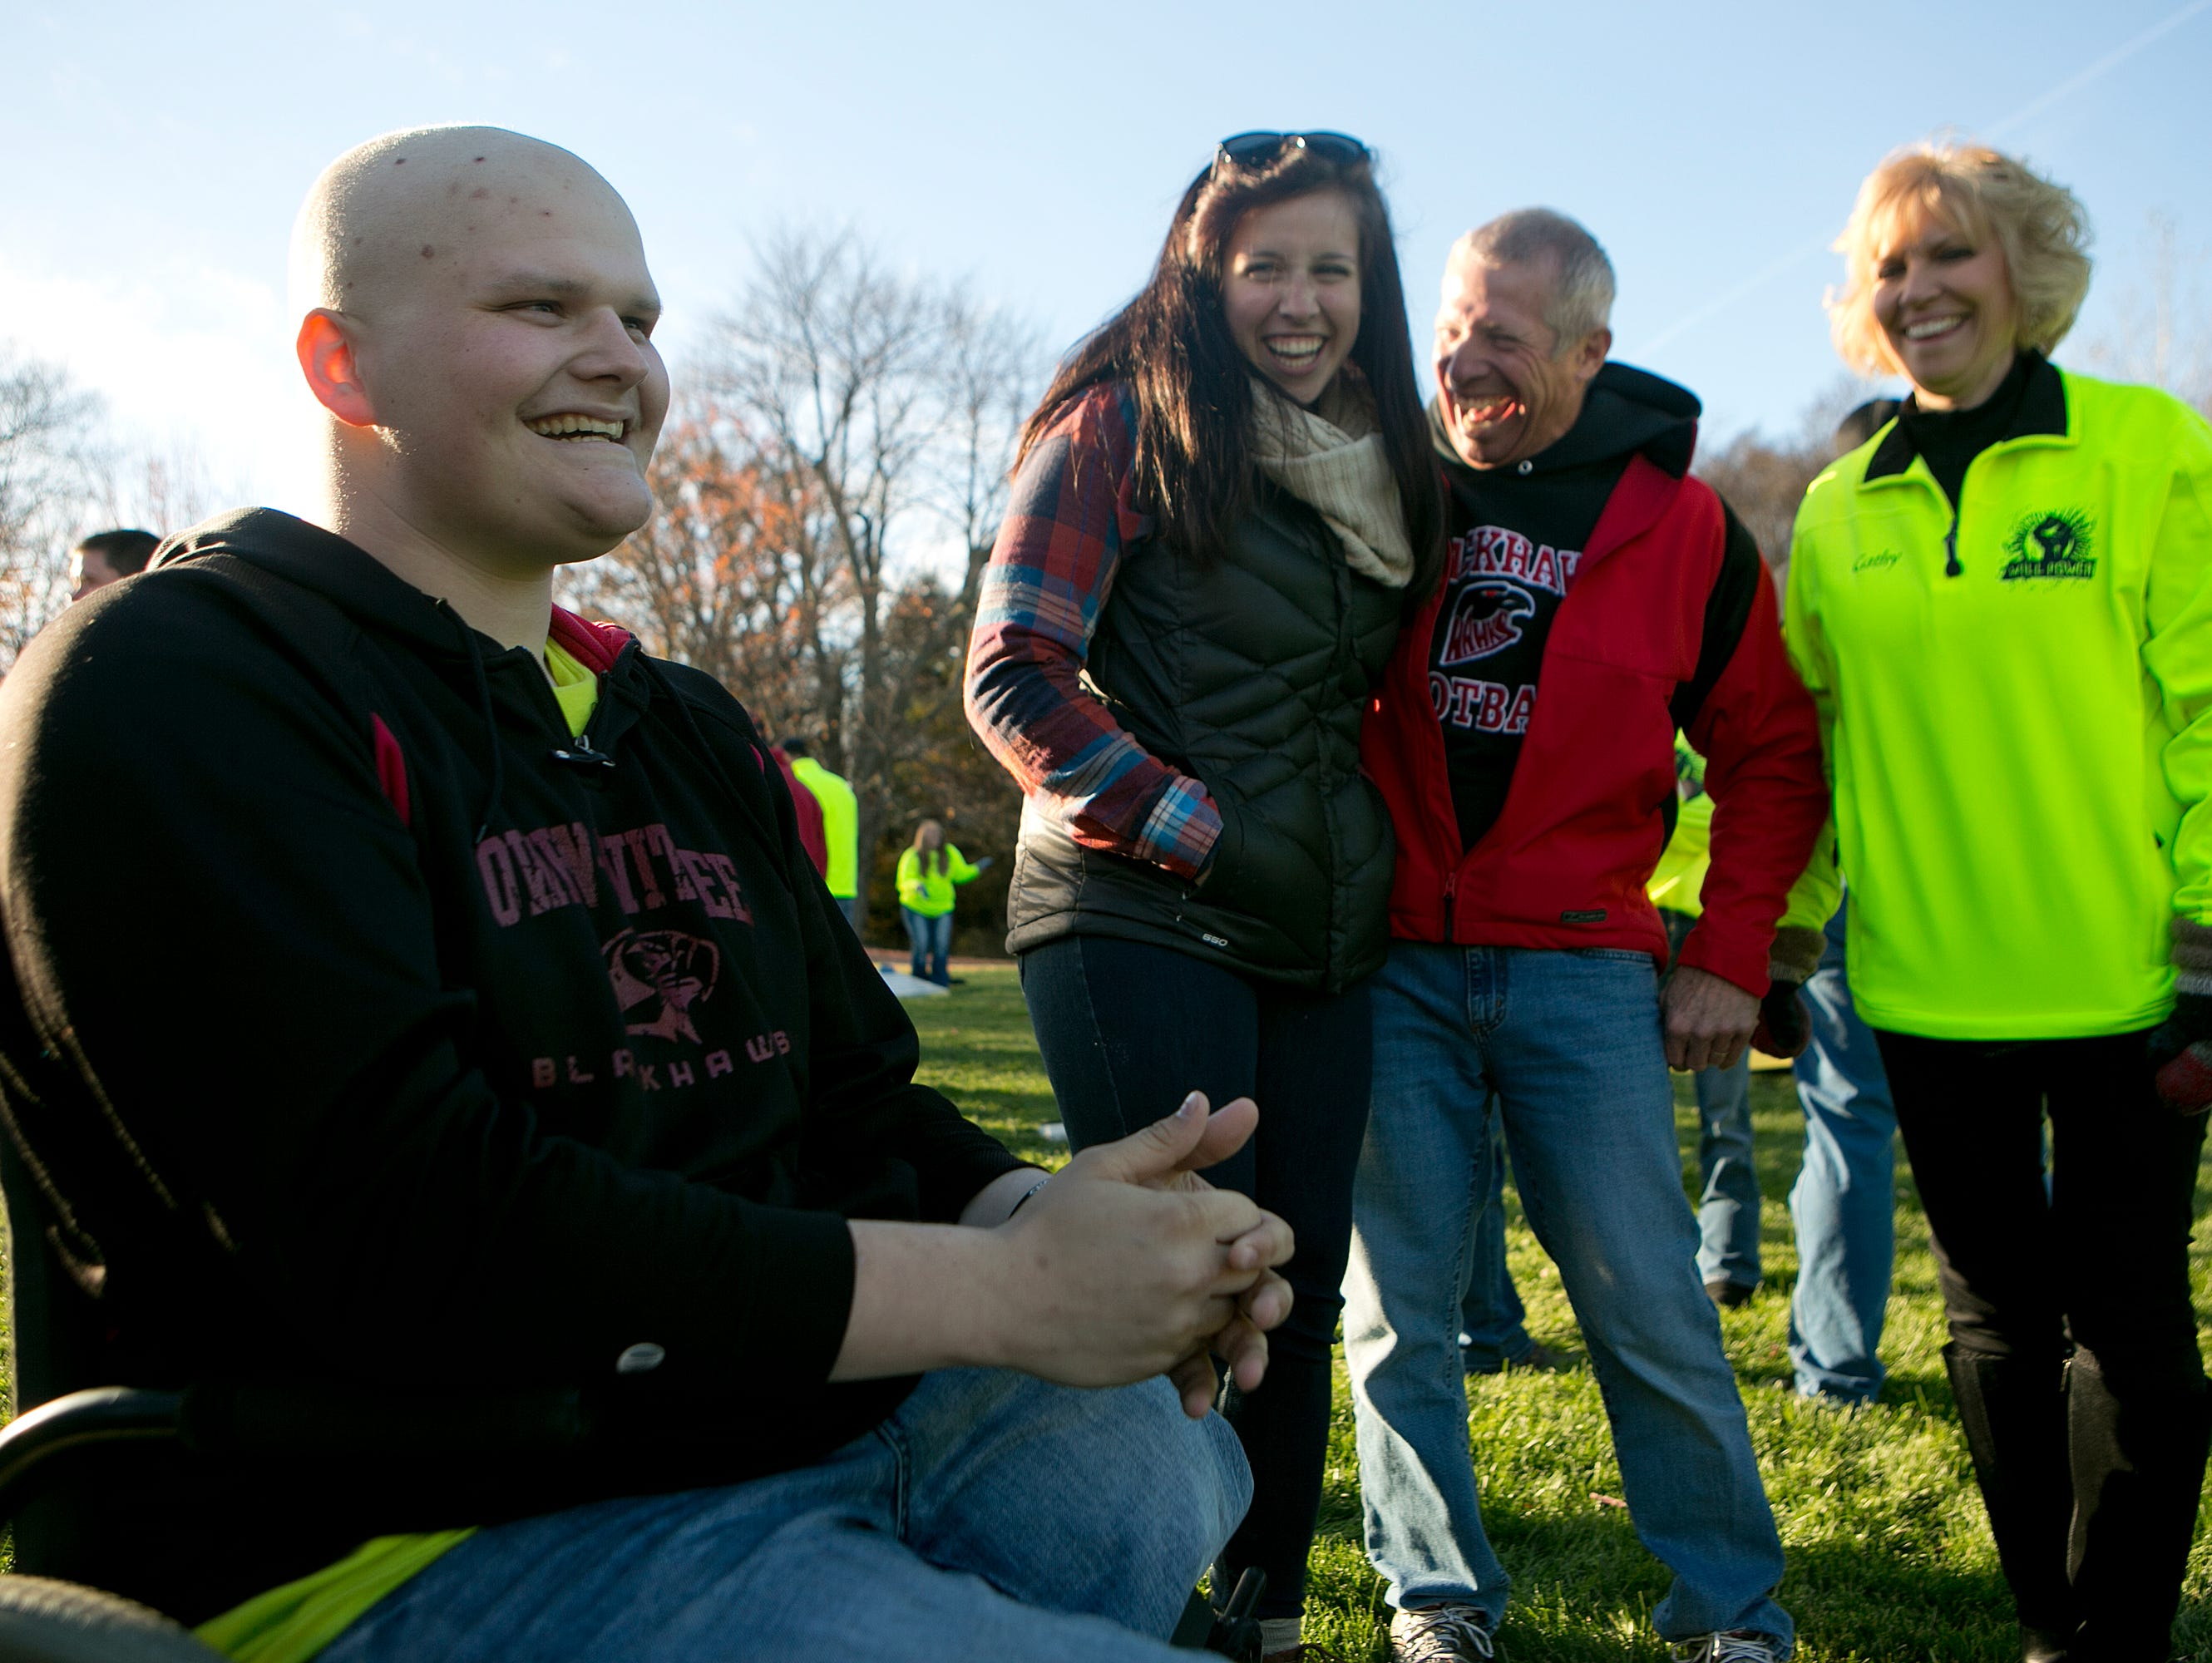 From left, Will Maki shares a laugh with friend Bailey Karaba, Owen-Withee football coach Terry Laube and his wife Cathy Laube during the Will Power fundraiser at Munson Bridge Winery in Withee, Saturday, Oct. 17. Maki was diagnosed with Osteosarcoma bone cancer in his femur in July and had to have his leg amputated in September. He was a member of the Owen-Withee football team that won the state championship in 2014.